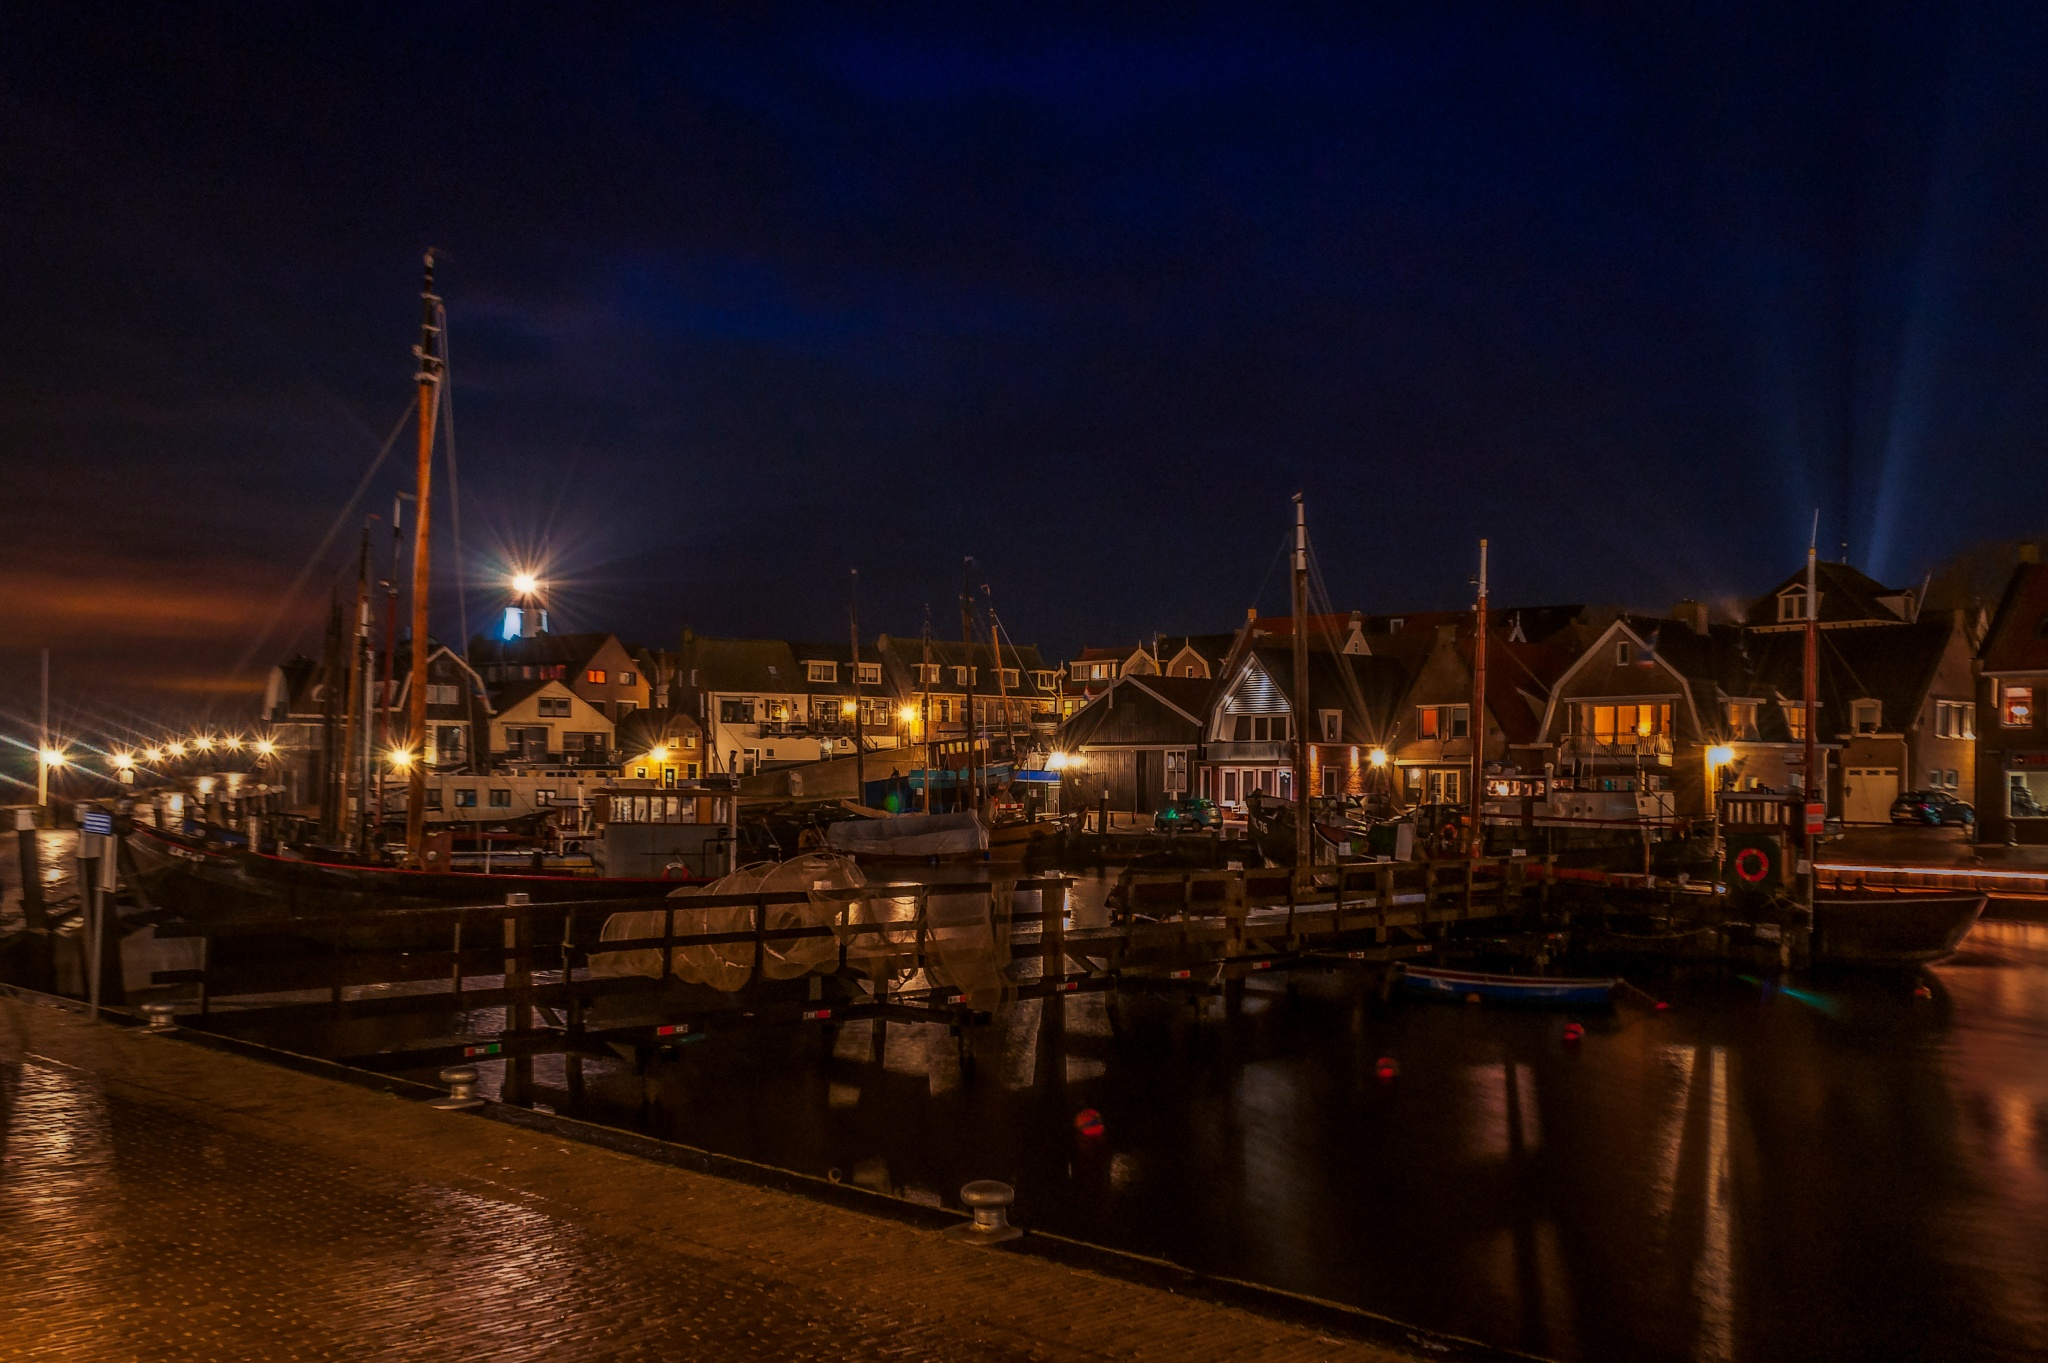 Urk, old school fishingharbour in Holland waking up. by Robin Pulles